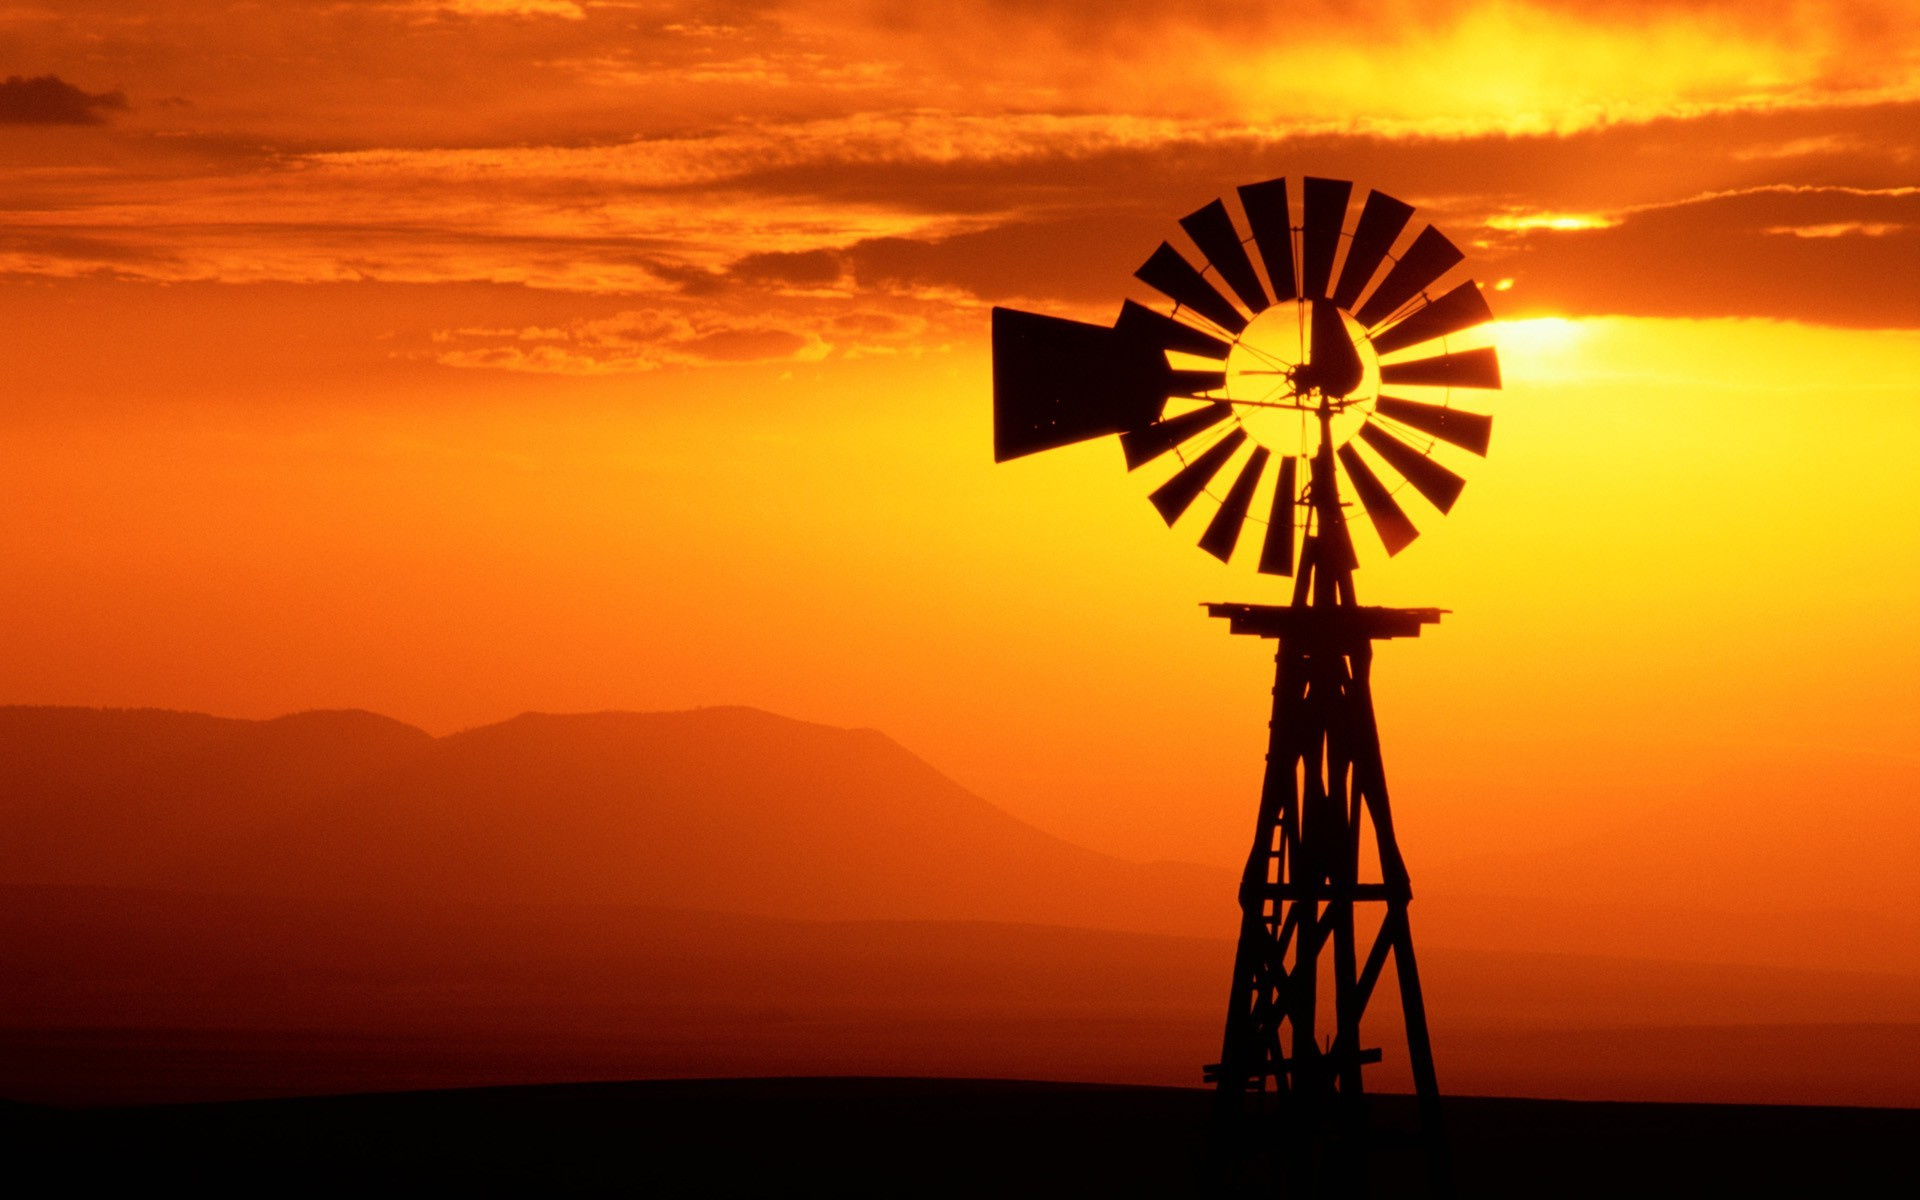 Hd Wallpaper Girls 1920x1200 Usa Silhouette Sunset Windmills Wallpapers Hd Desktop